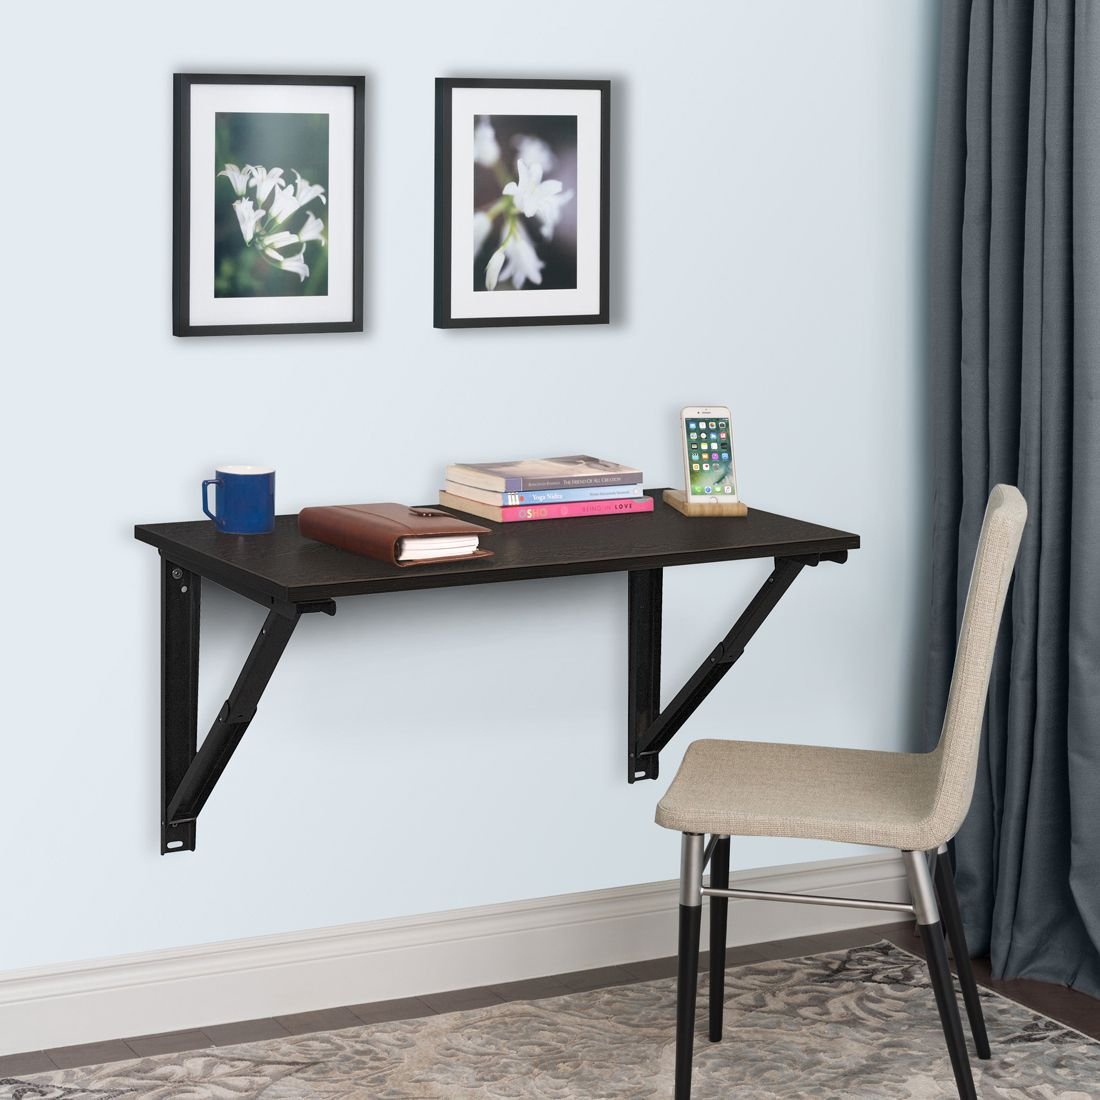 36 Inches Wizard Folding Study Table Wenge Colour by Delite kom